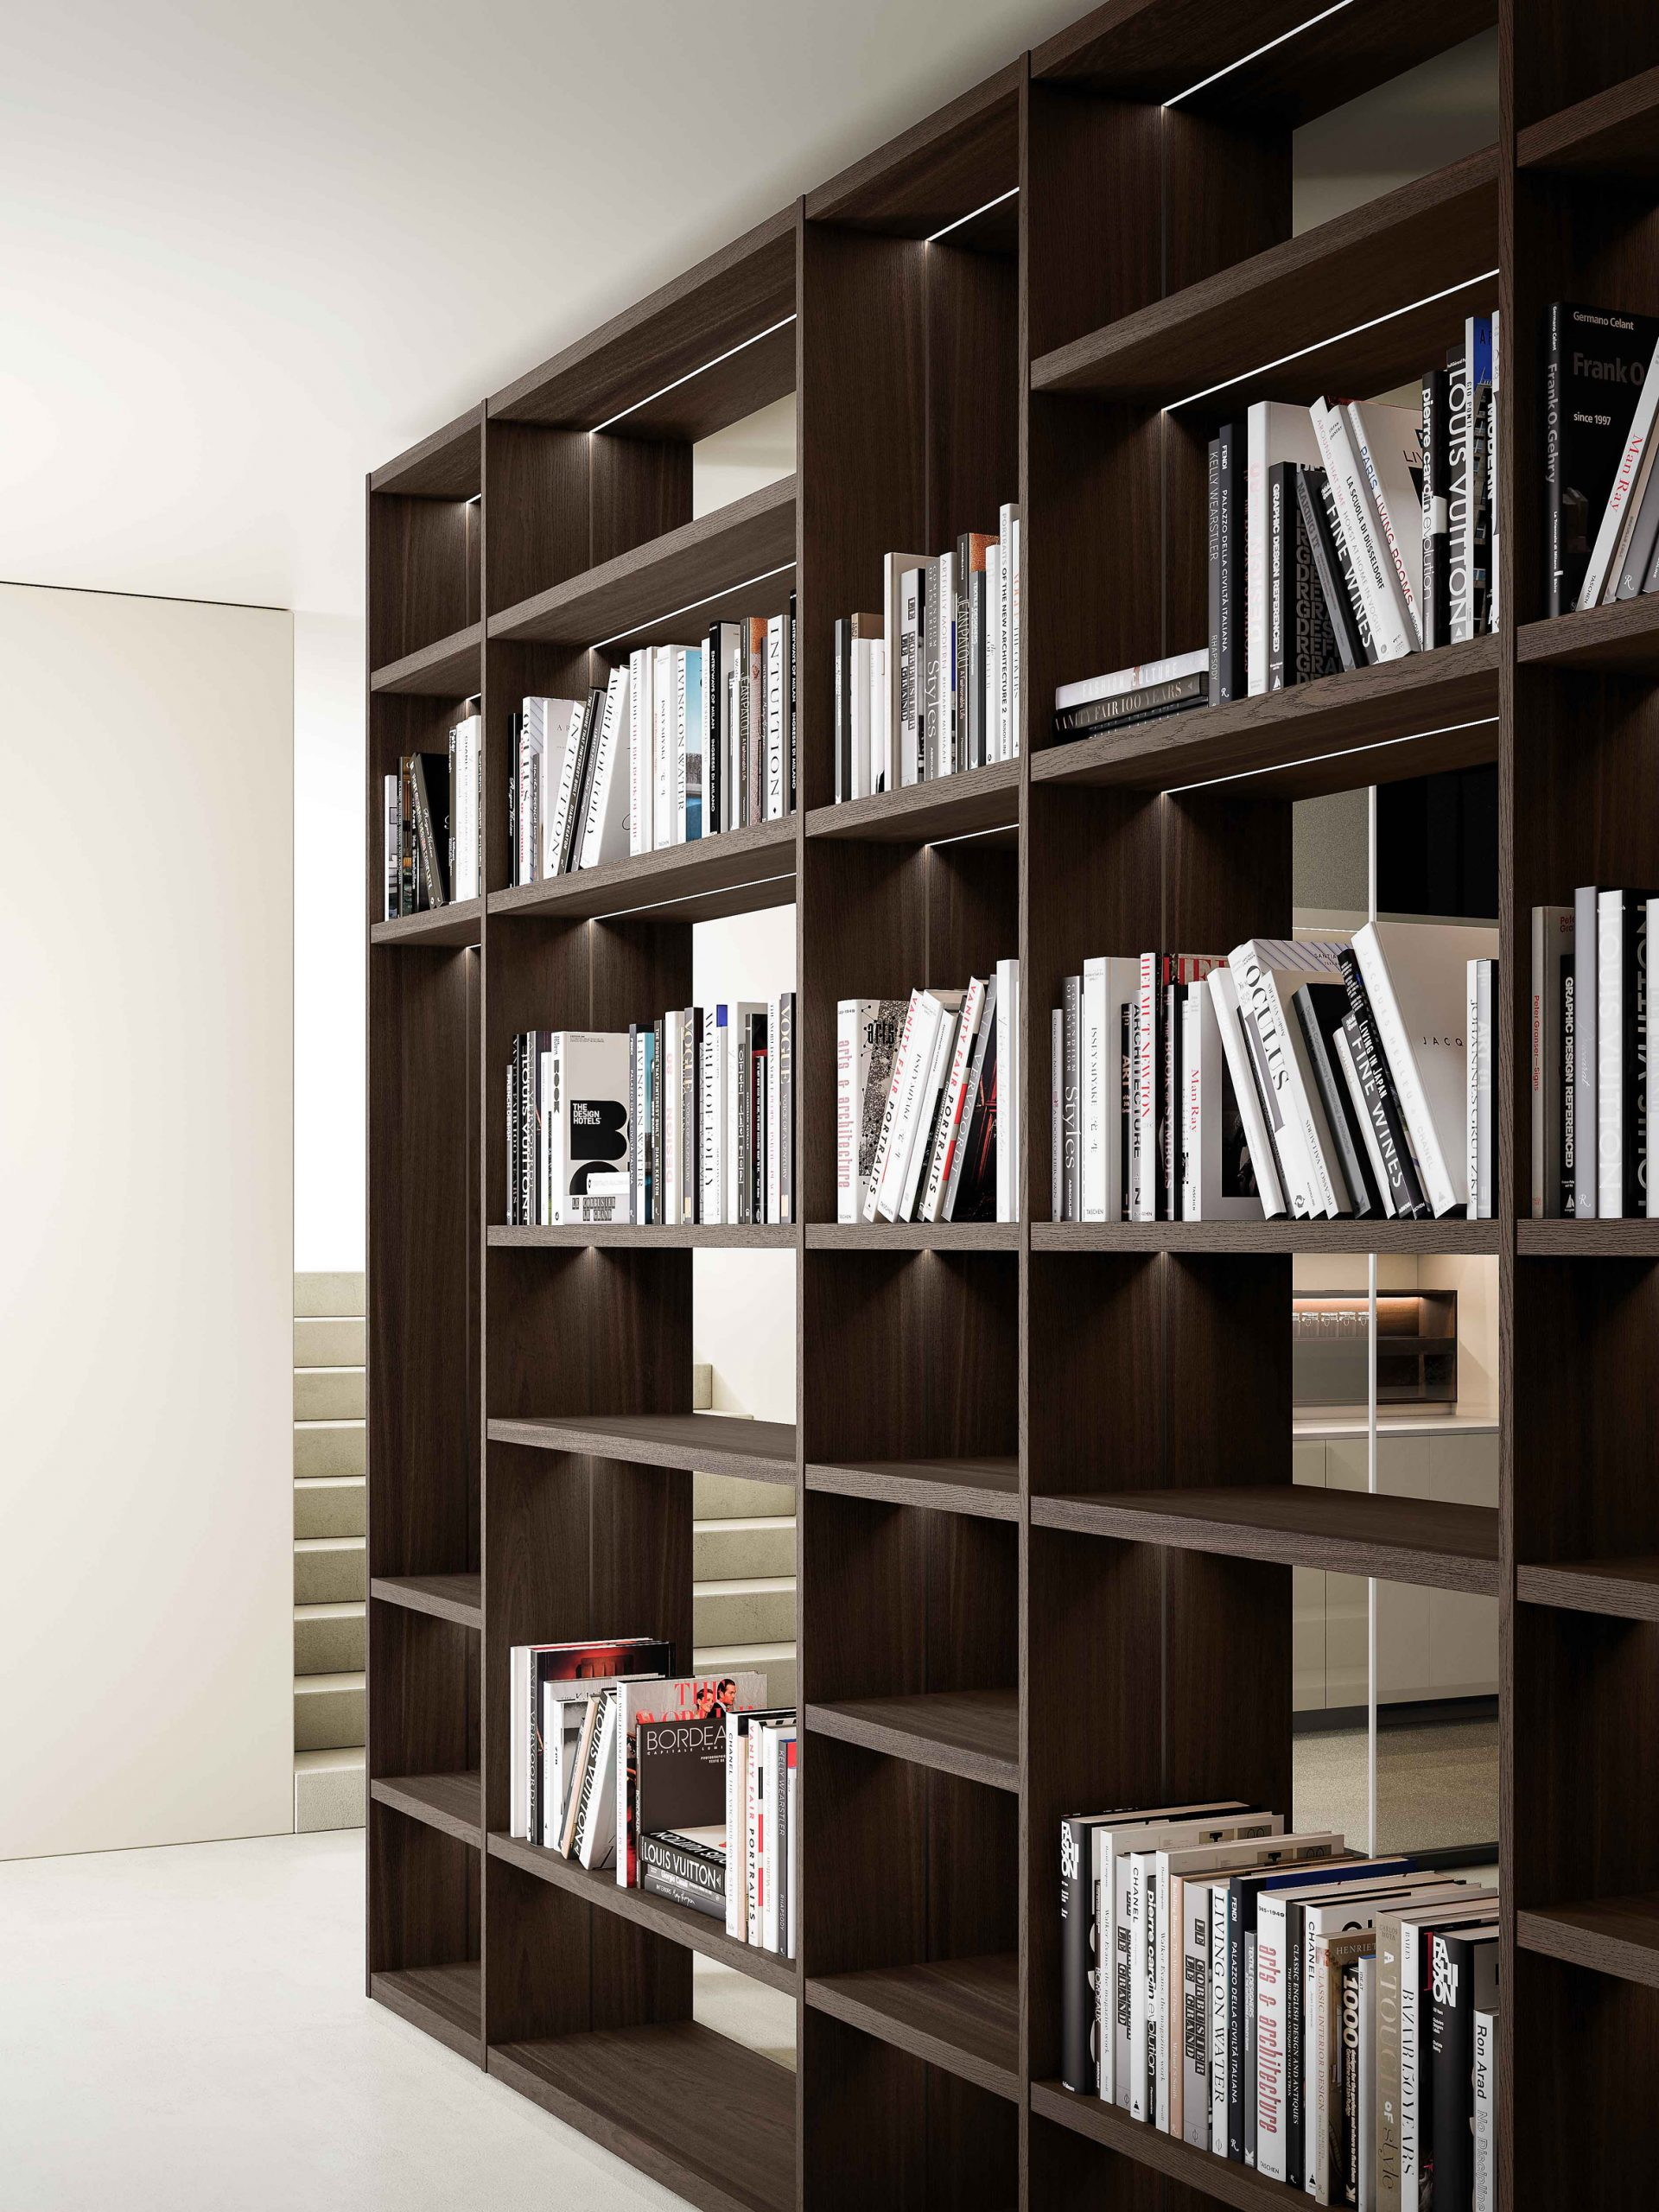 Wooden shelving system by Boffi holding books